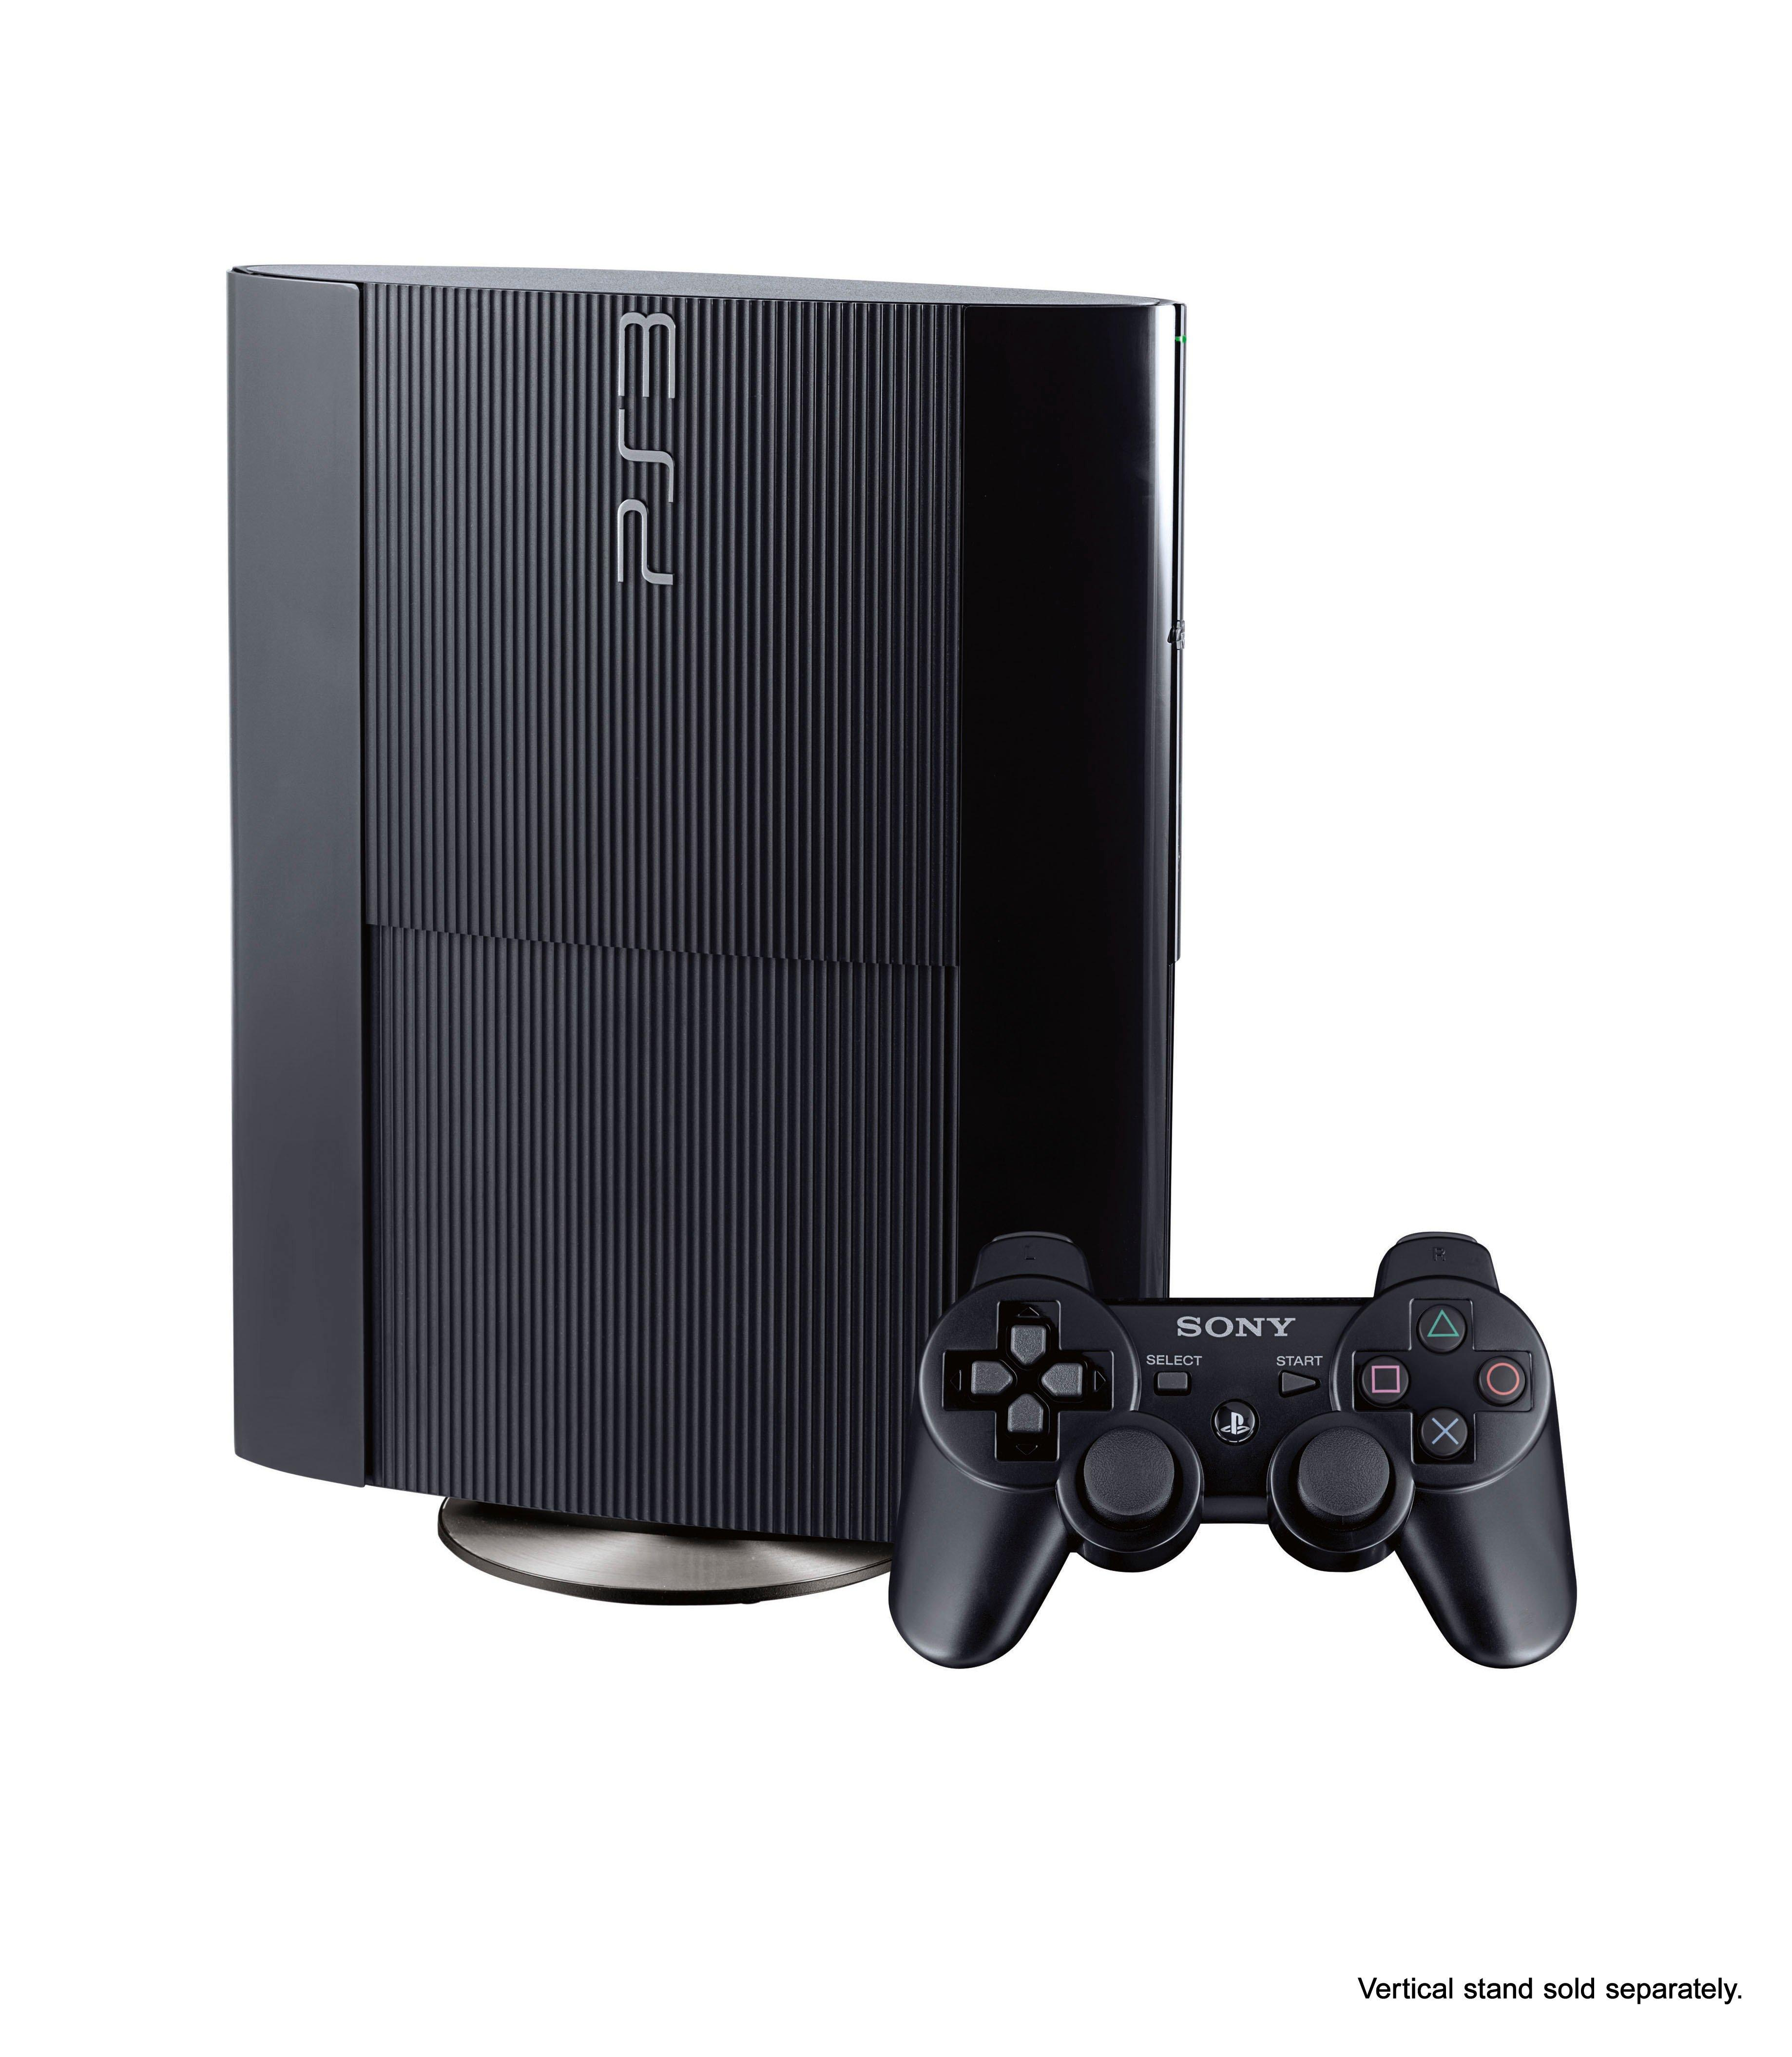 Playstation3 12gb System Gamestop Premium Refurbished Playstation 3 Gamestop